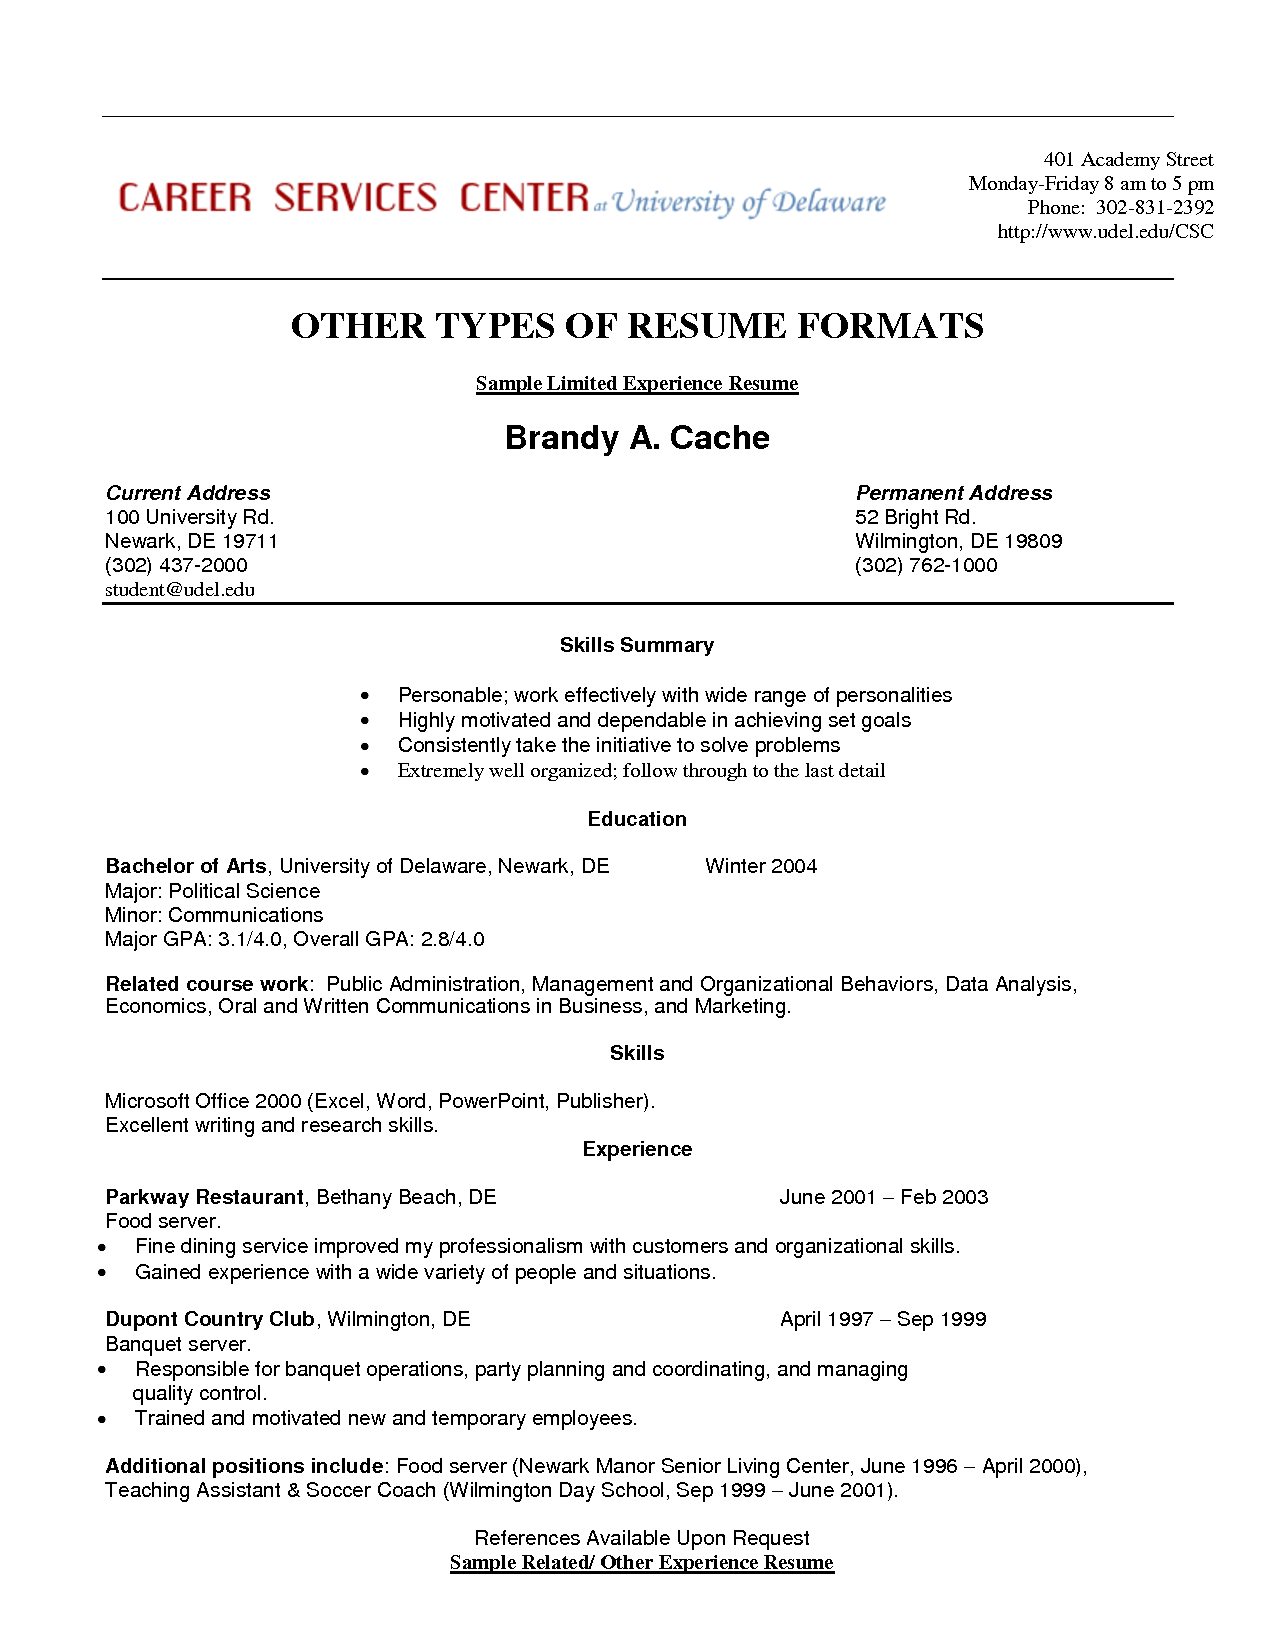 Resume Templates Limited Work Experience